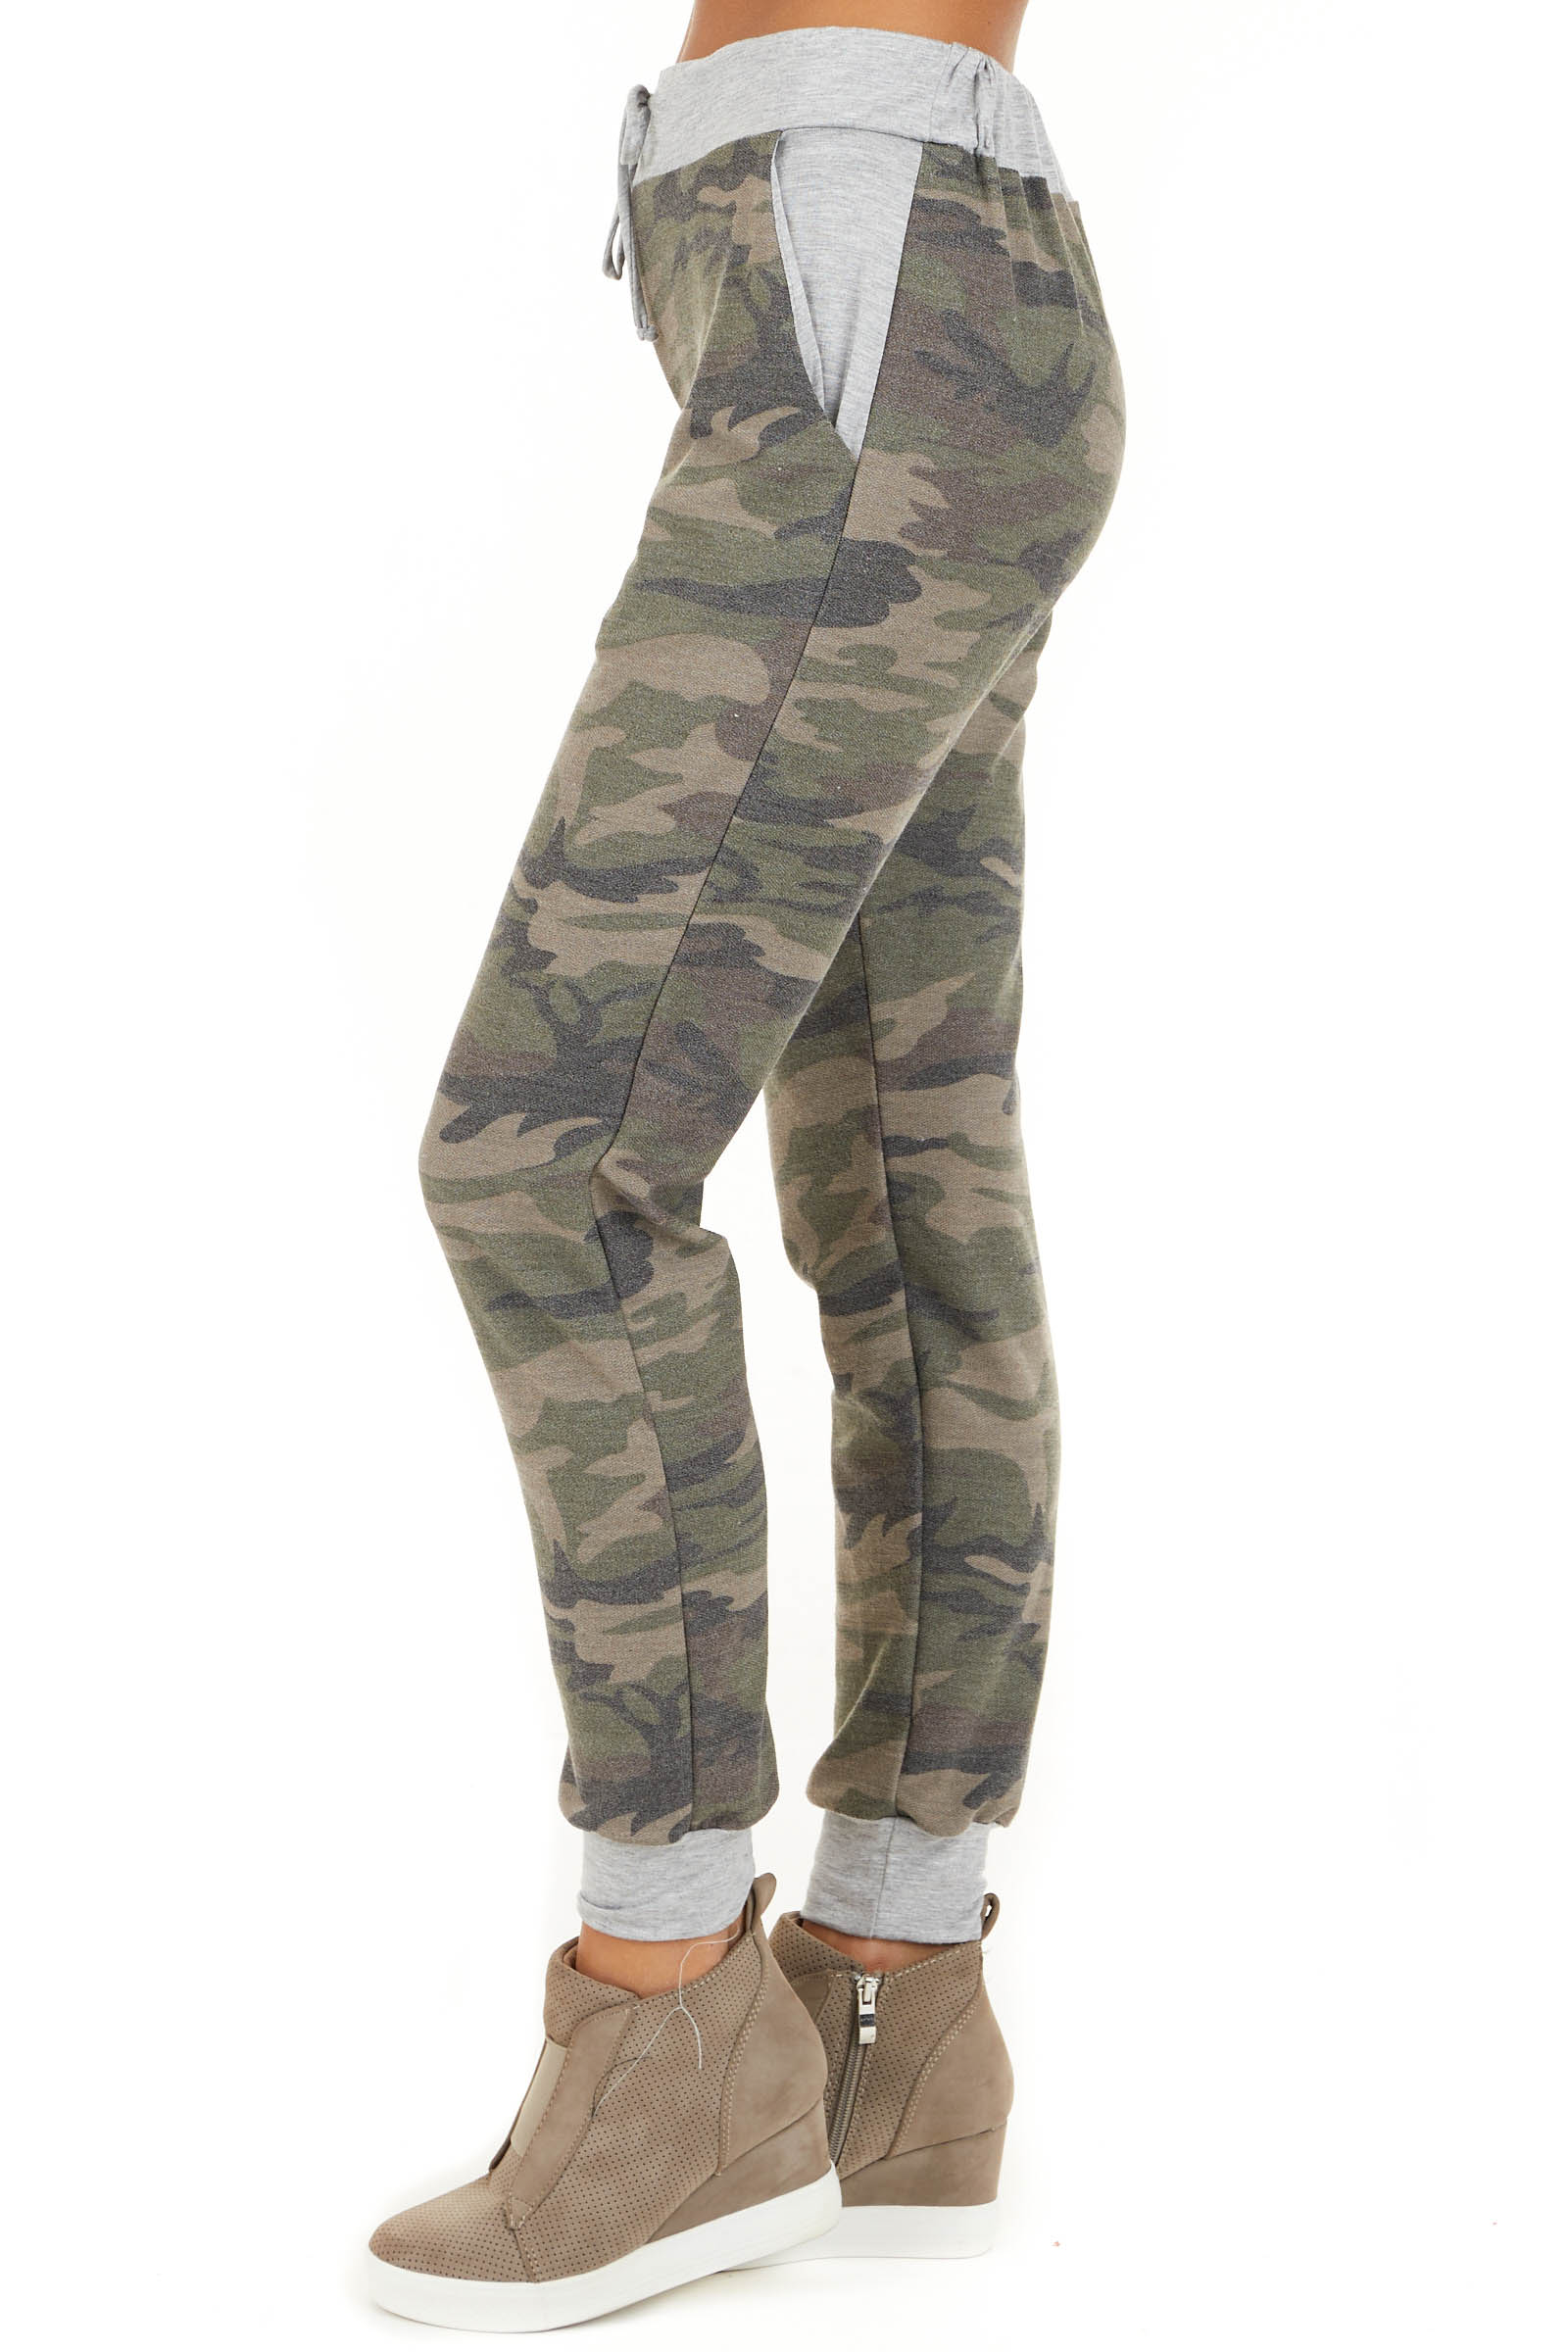 Olive Camo Print Jogger Pants with Drawstring and Pockets side view